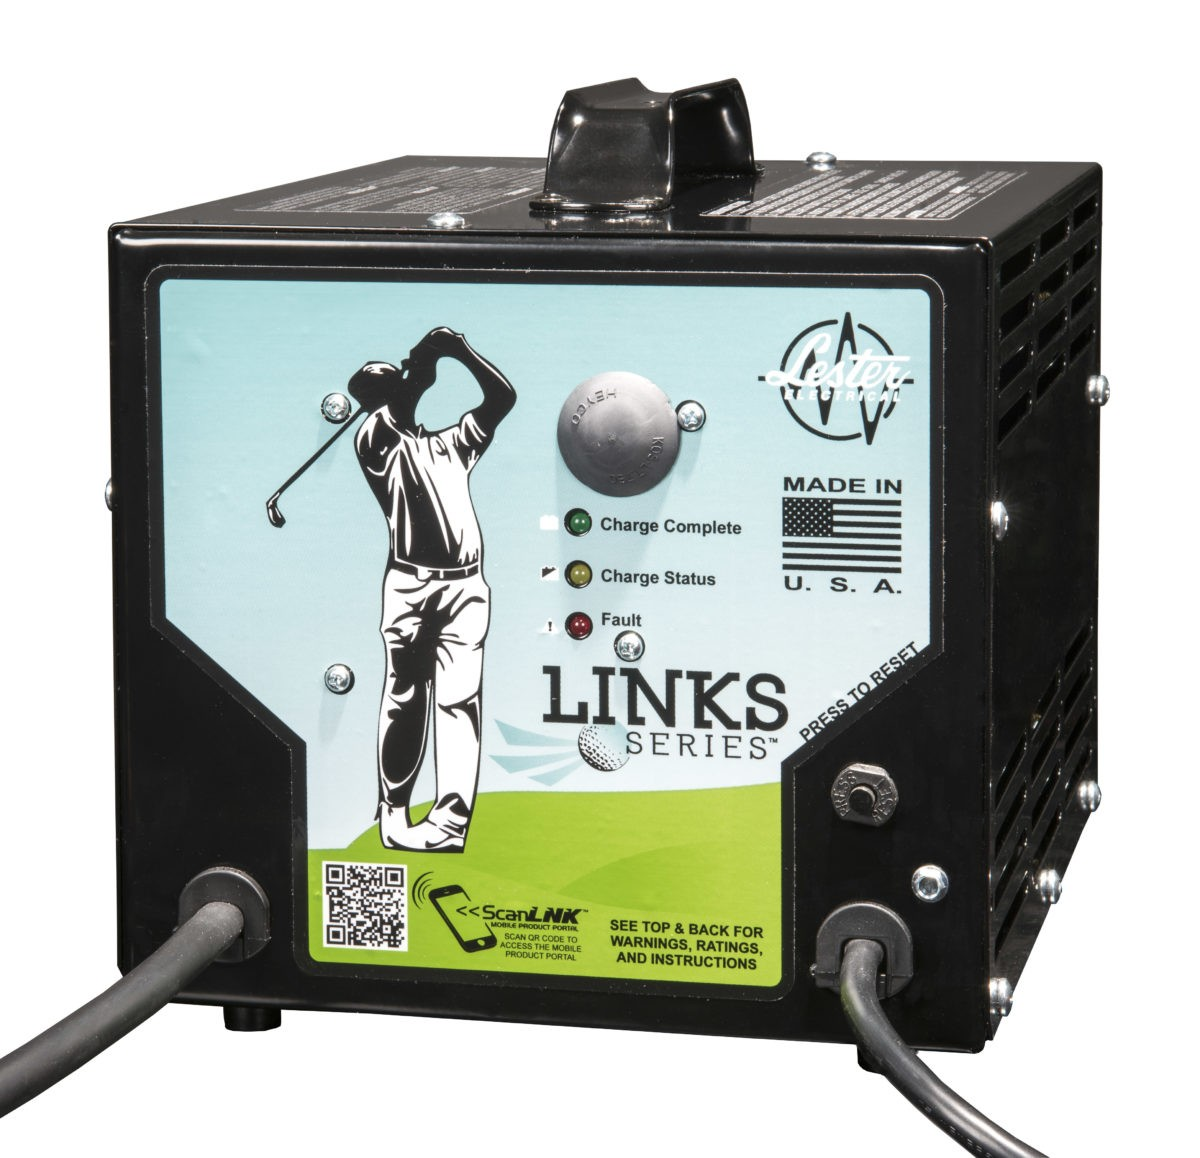 Links-Series-E-Series-II-1200x1158